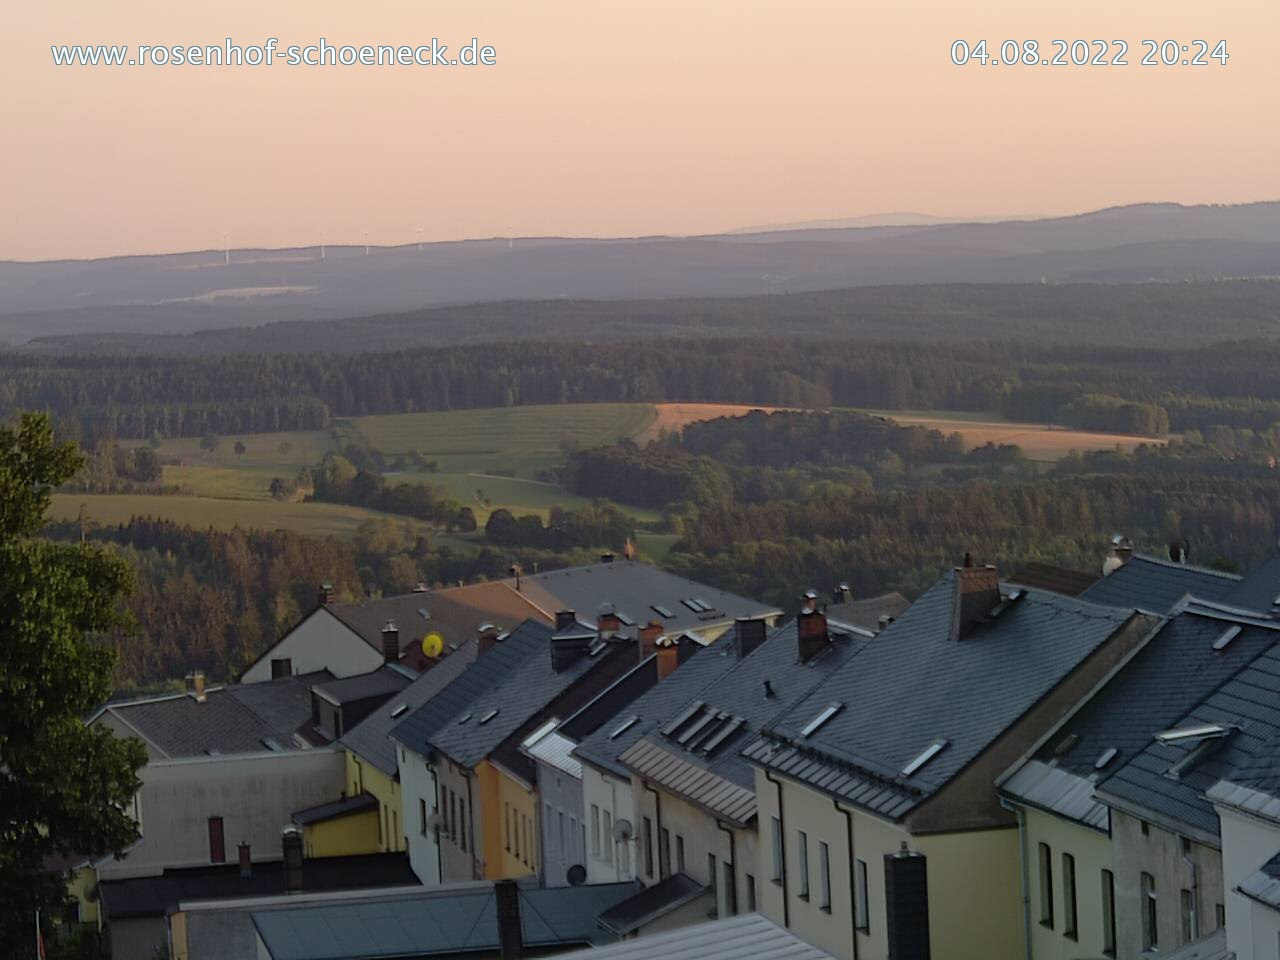 Webcam Rosenhof